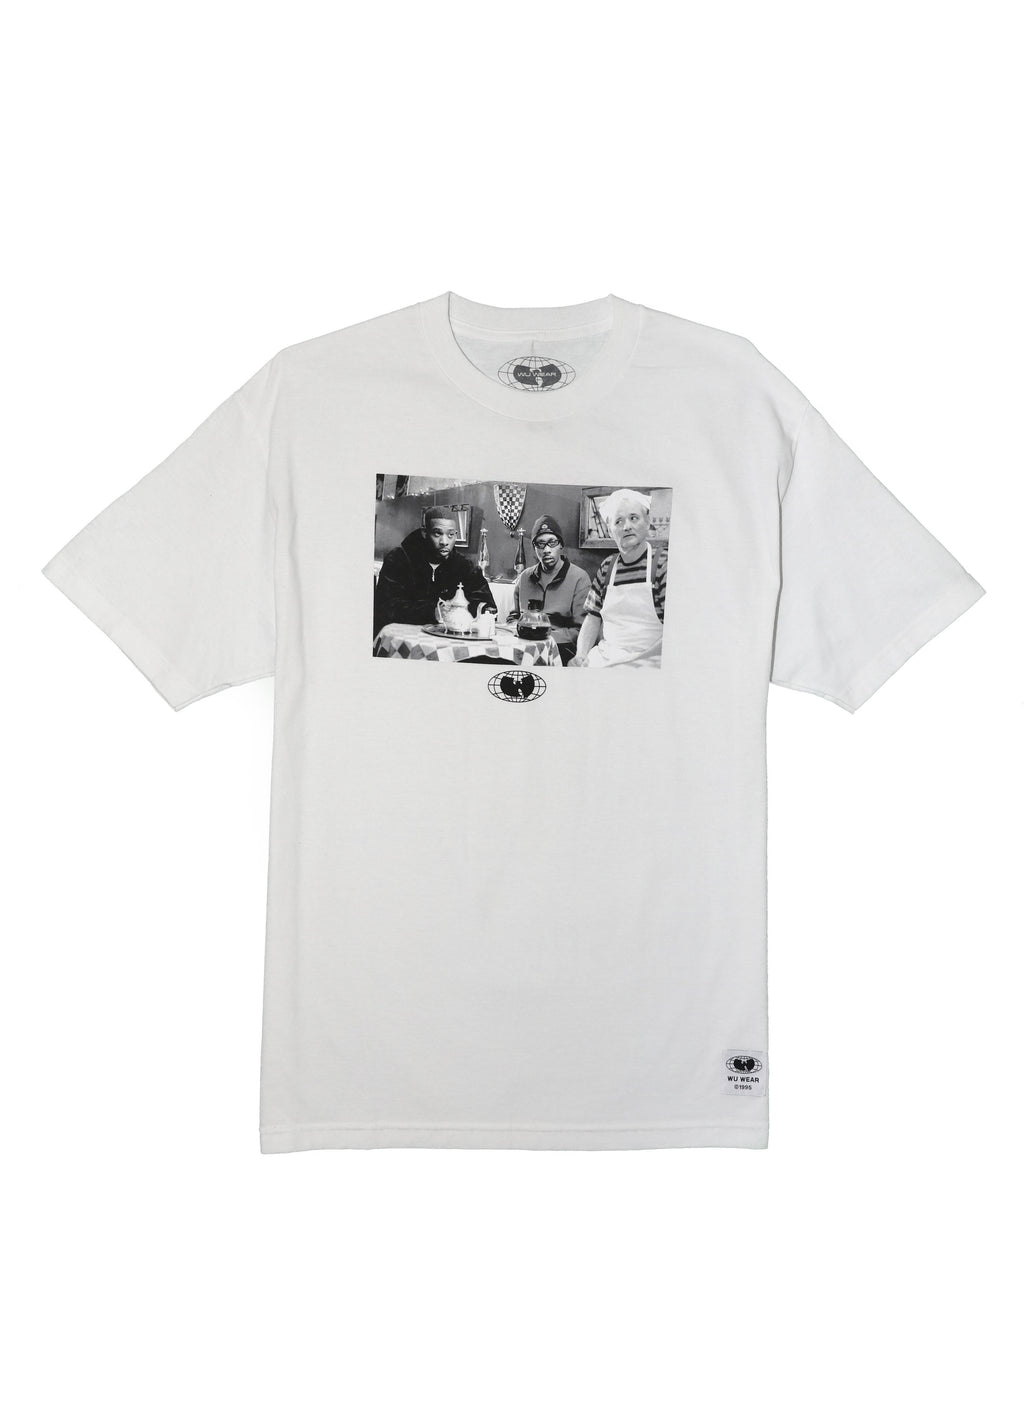 DELIRIUM TEE - WHITE - Wu Wear